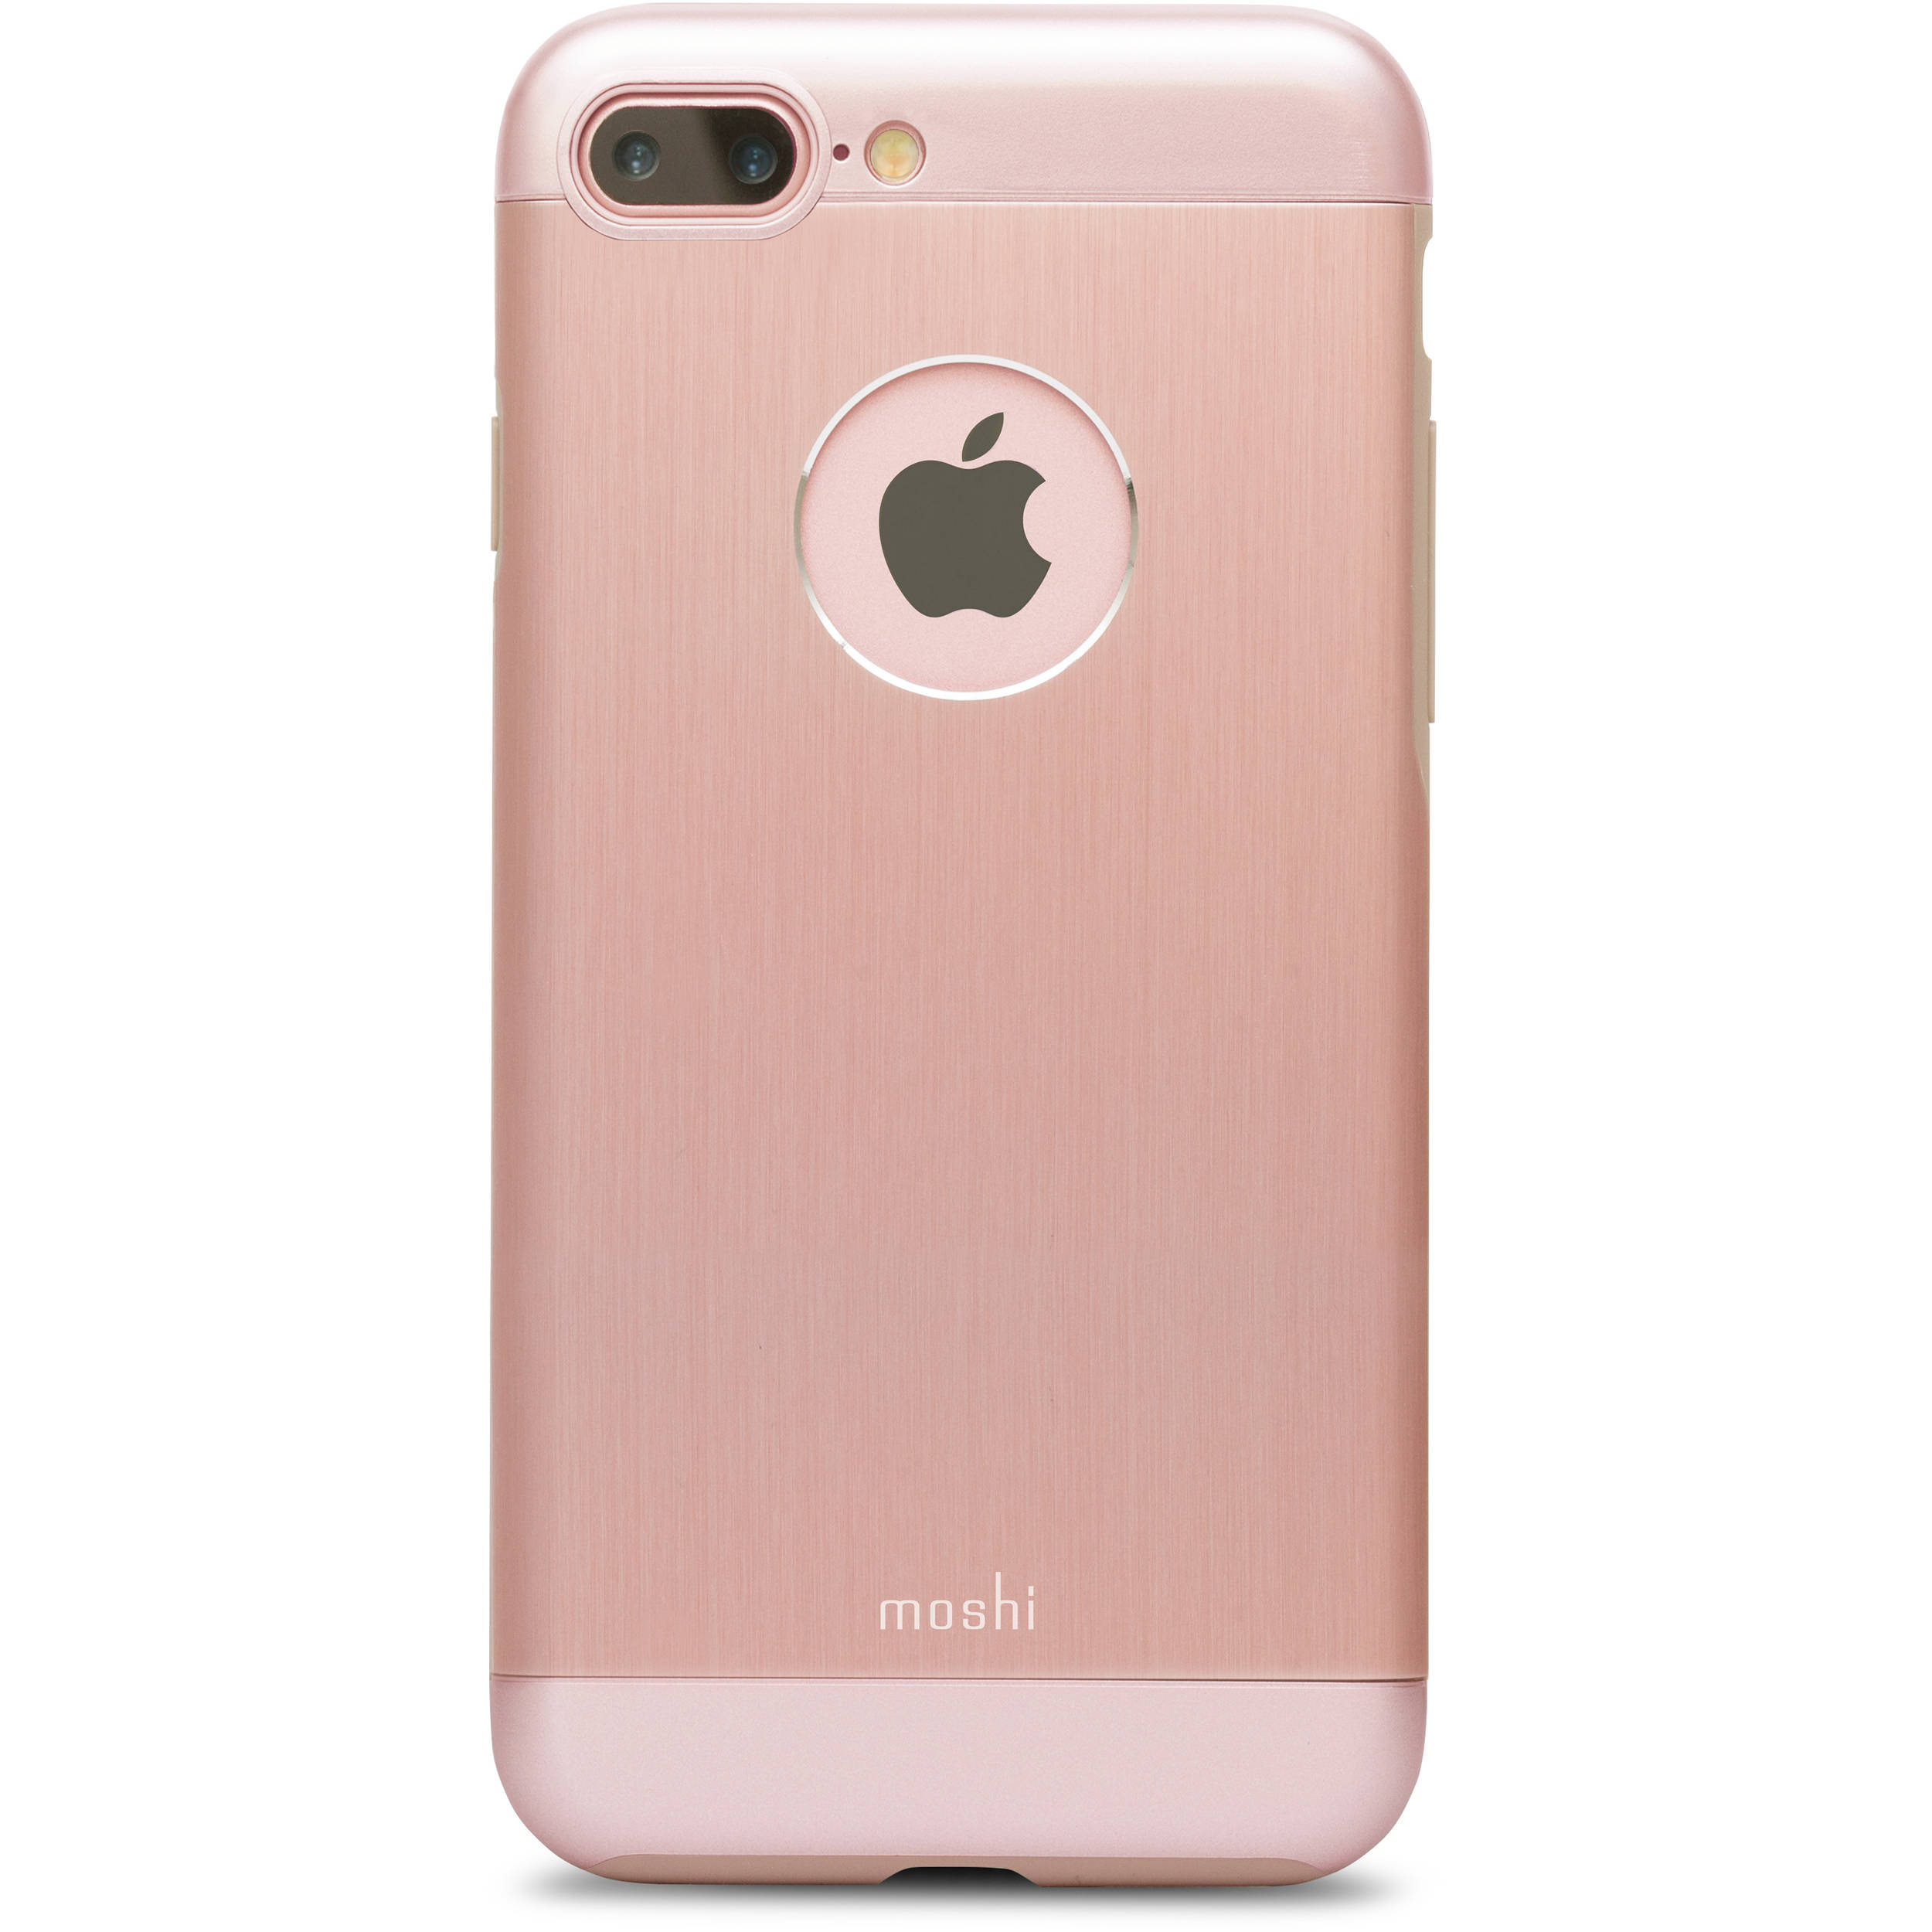 Moshi Armour For IPhone 7 Plus Rose Gold